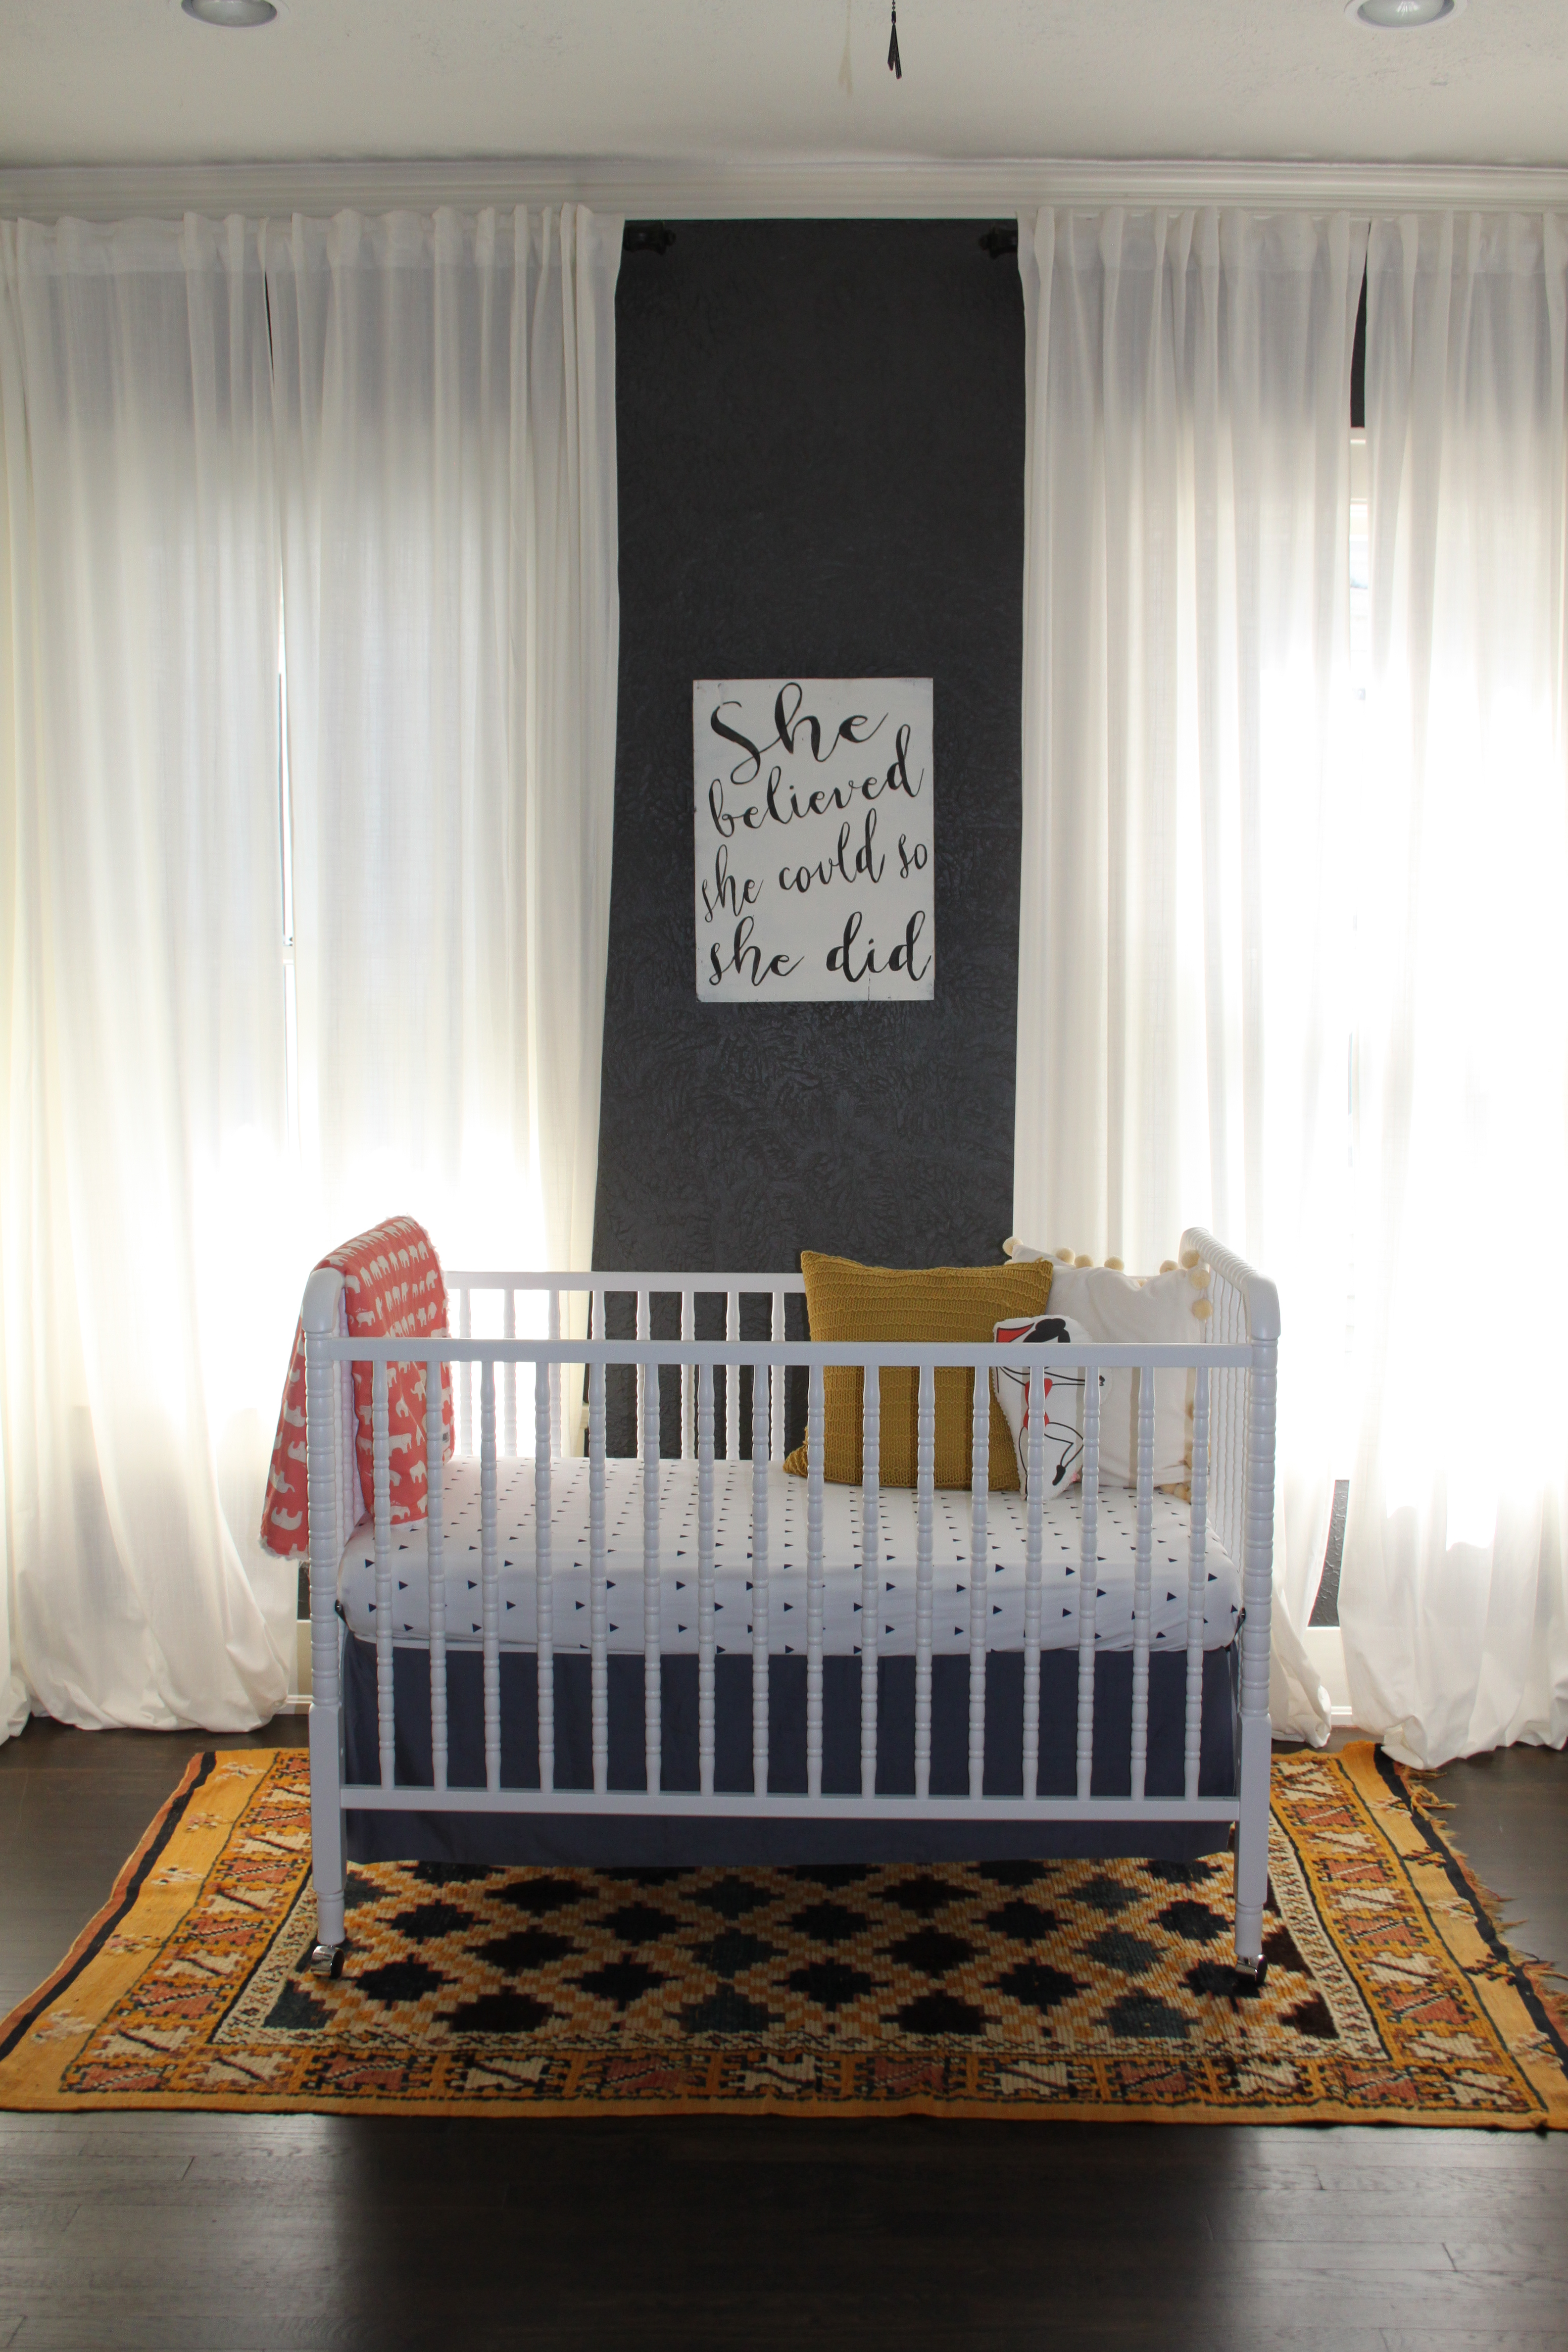 Crib for sale dallas - Jenny Lind Crib Vintage Rug From Morocco Elephant Blanket From Madly Wish Painted Sign From Dallas Flea Extra Long Drapes From Ikea Sheets And Crib